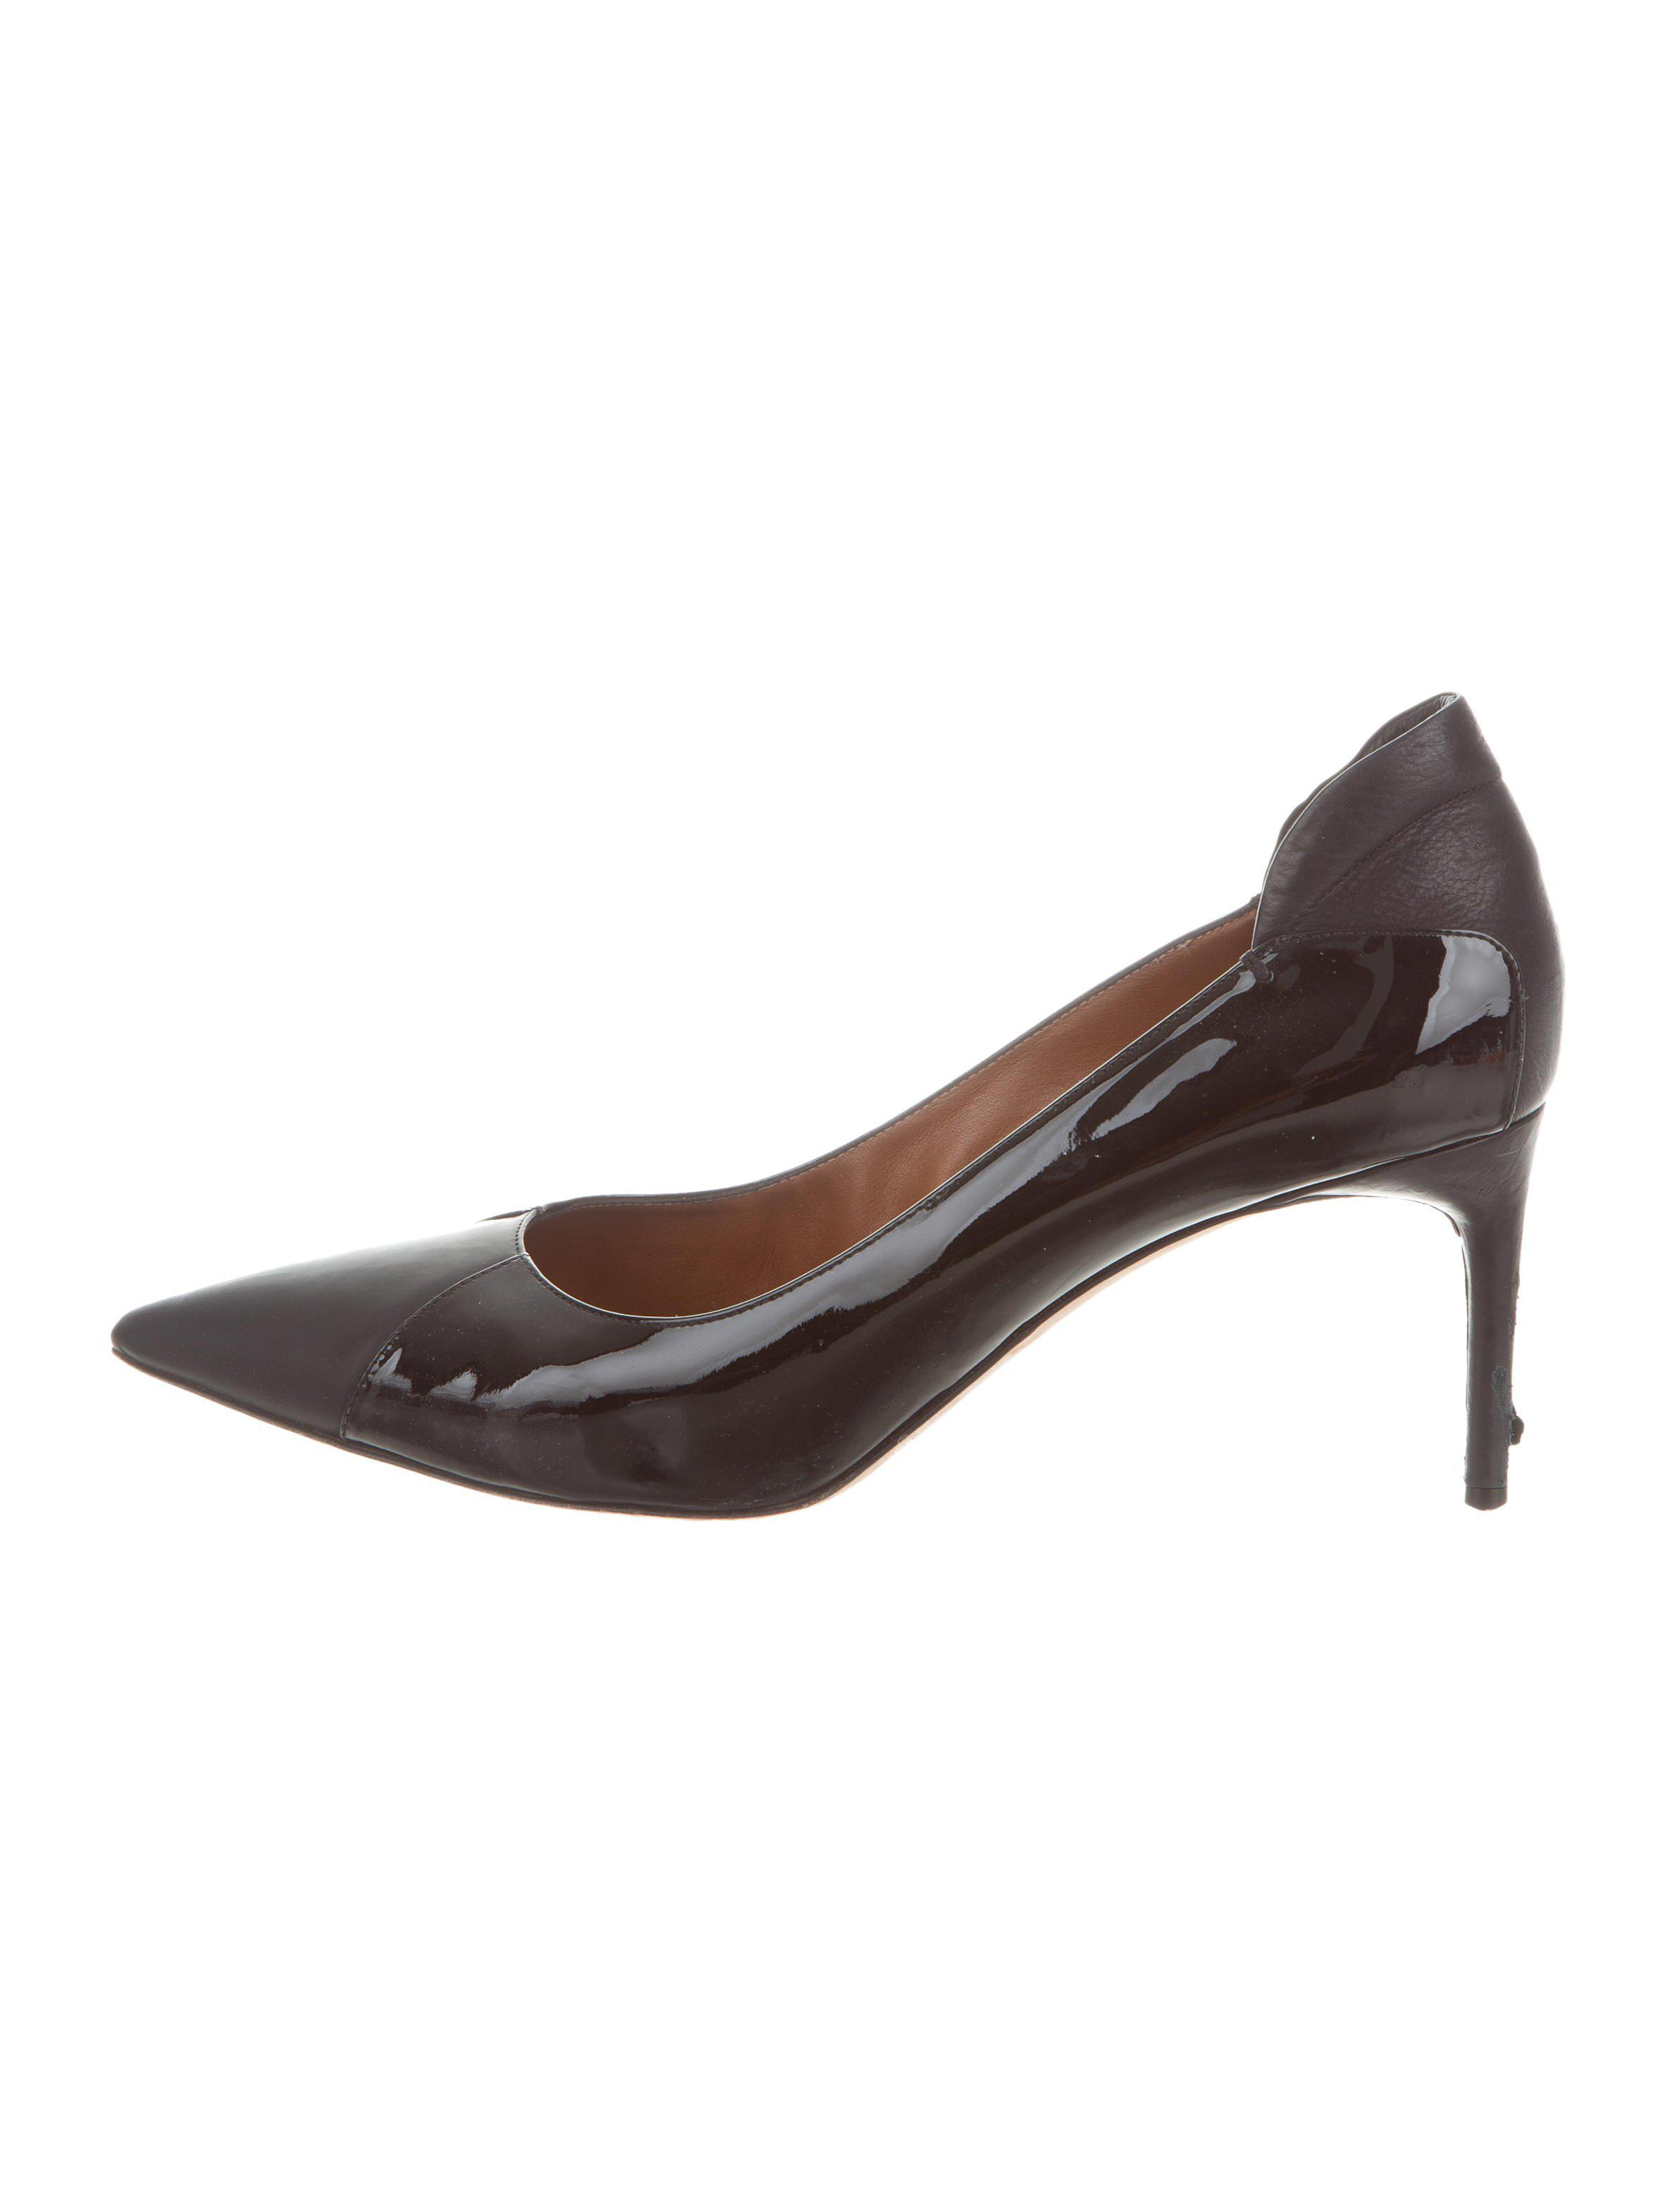 sale wiki official cheap price Reed Krakoff Suede Pointed-Toe Pumps discount original cheap footlocker pictures outlet discount MUBIb4